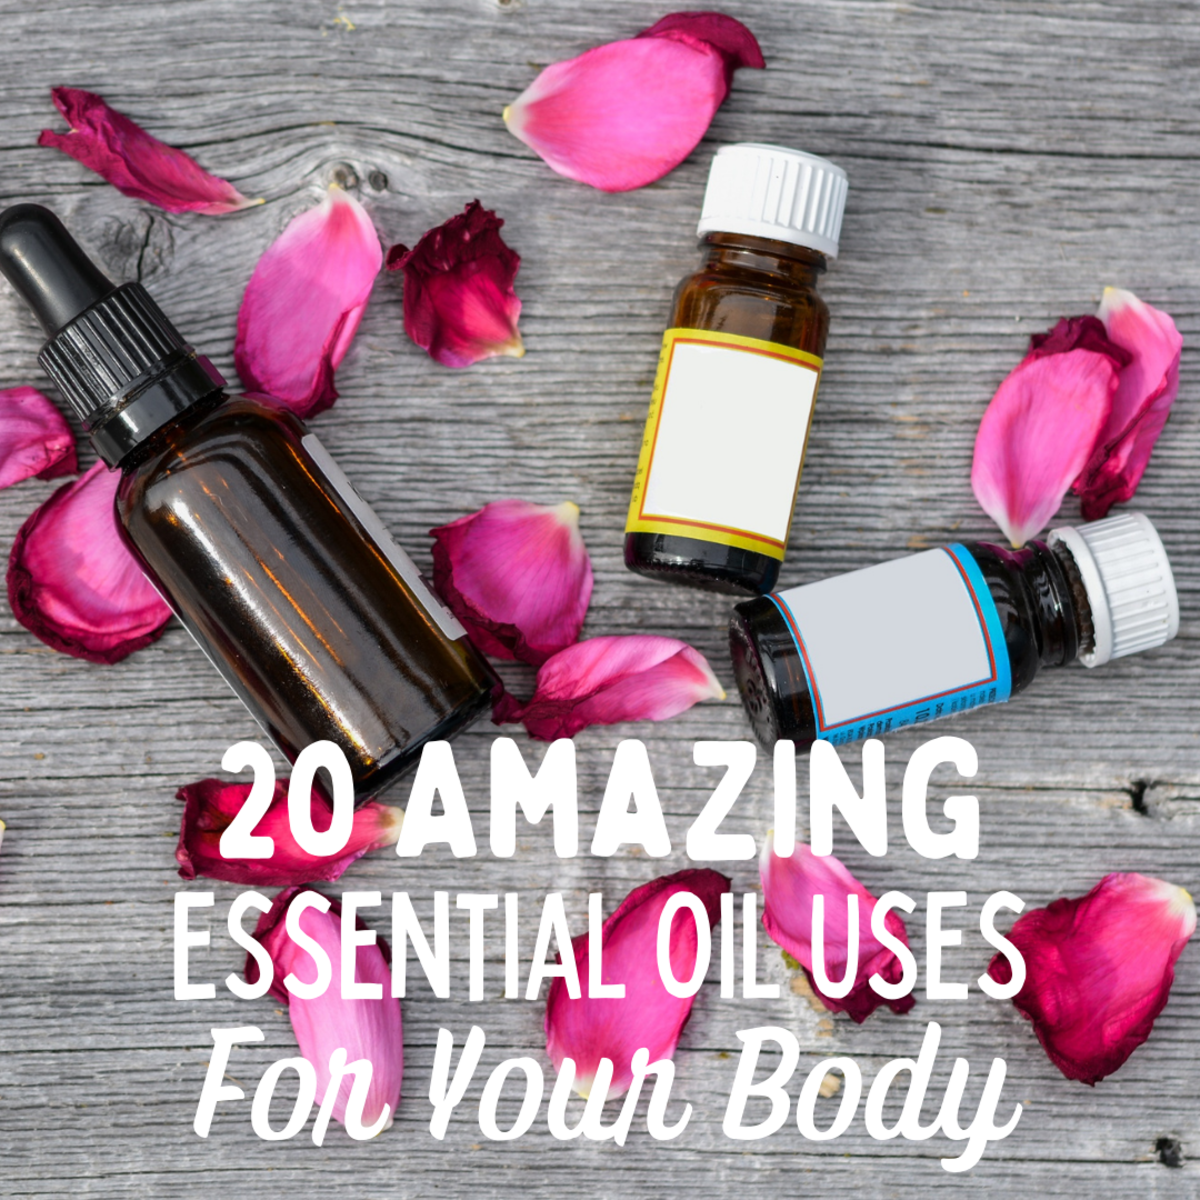 20 Amazing Essential Oil Uses for Your Body